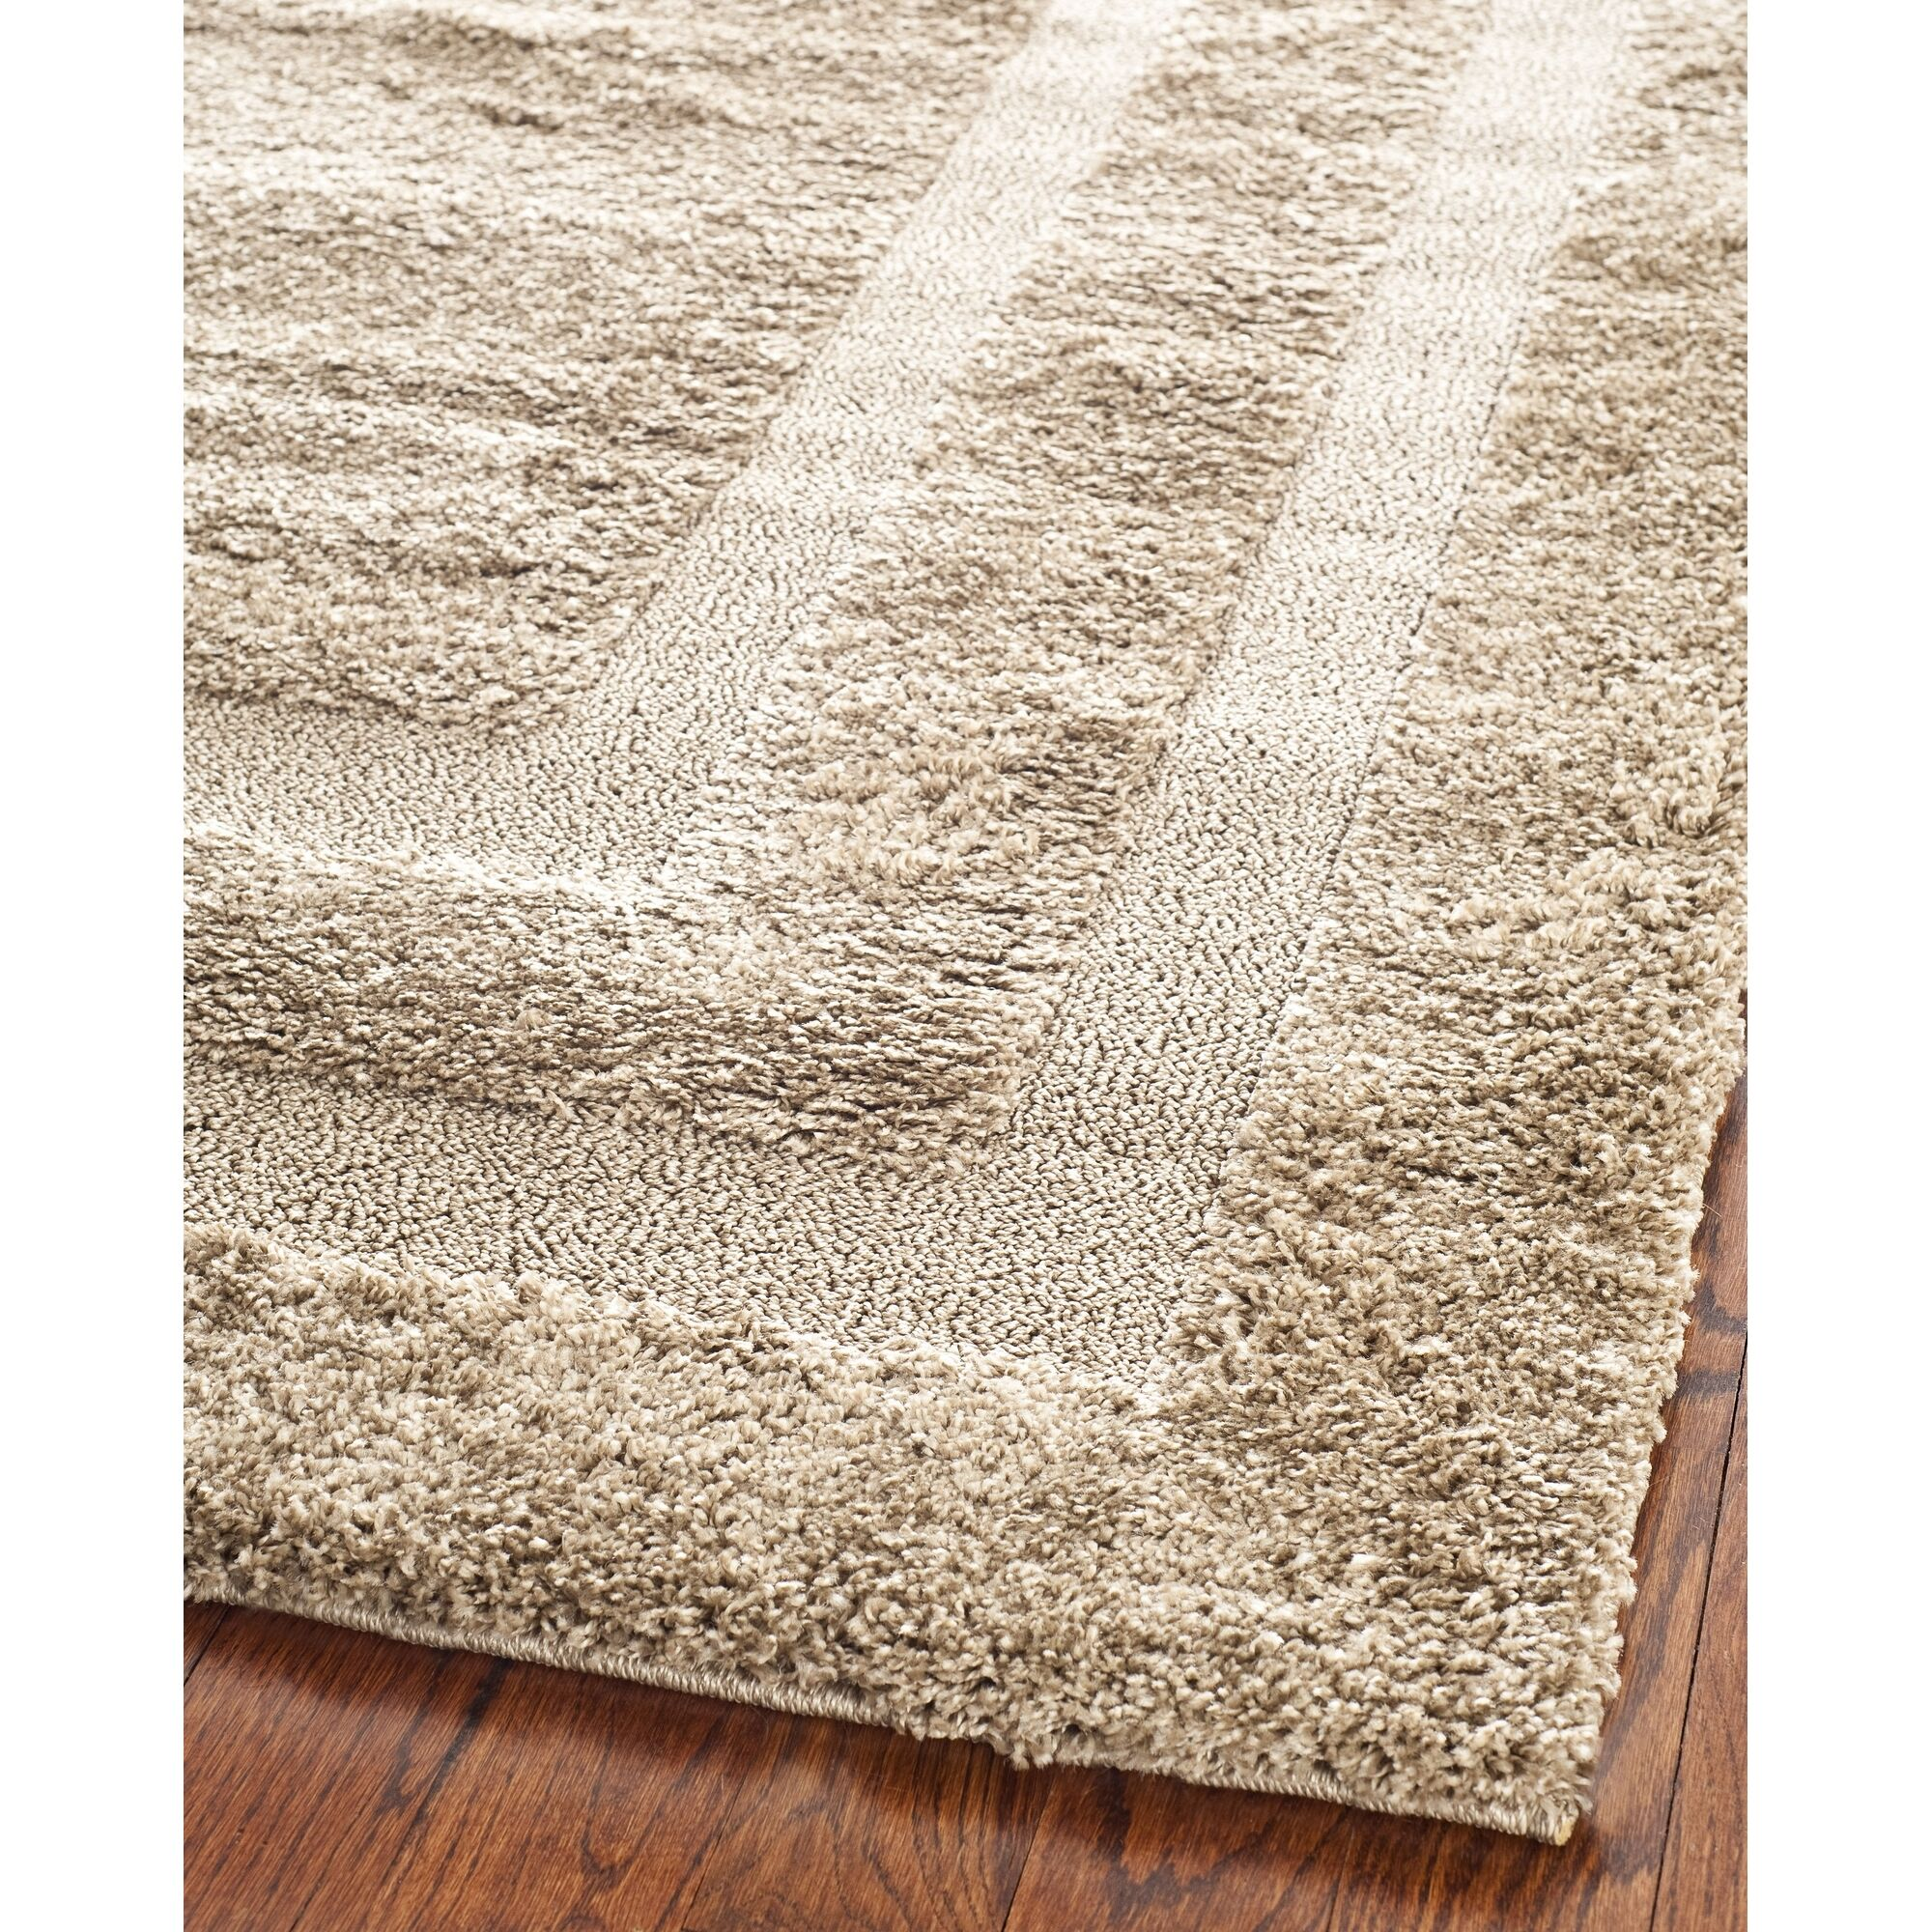 Drennen Area Rug Rug Size: Rectangle 5' x 7'